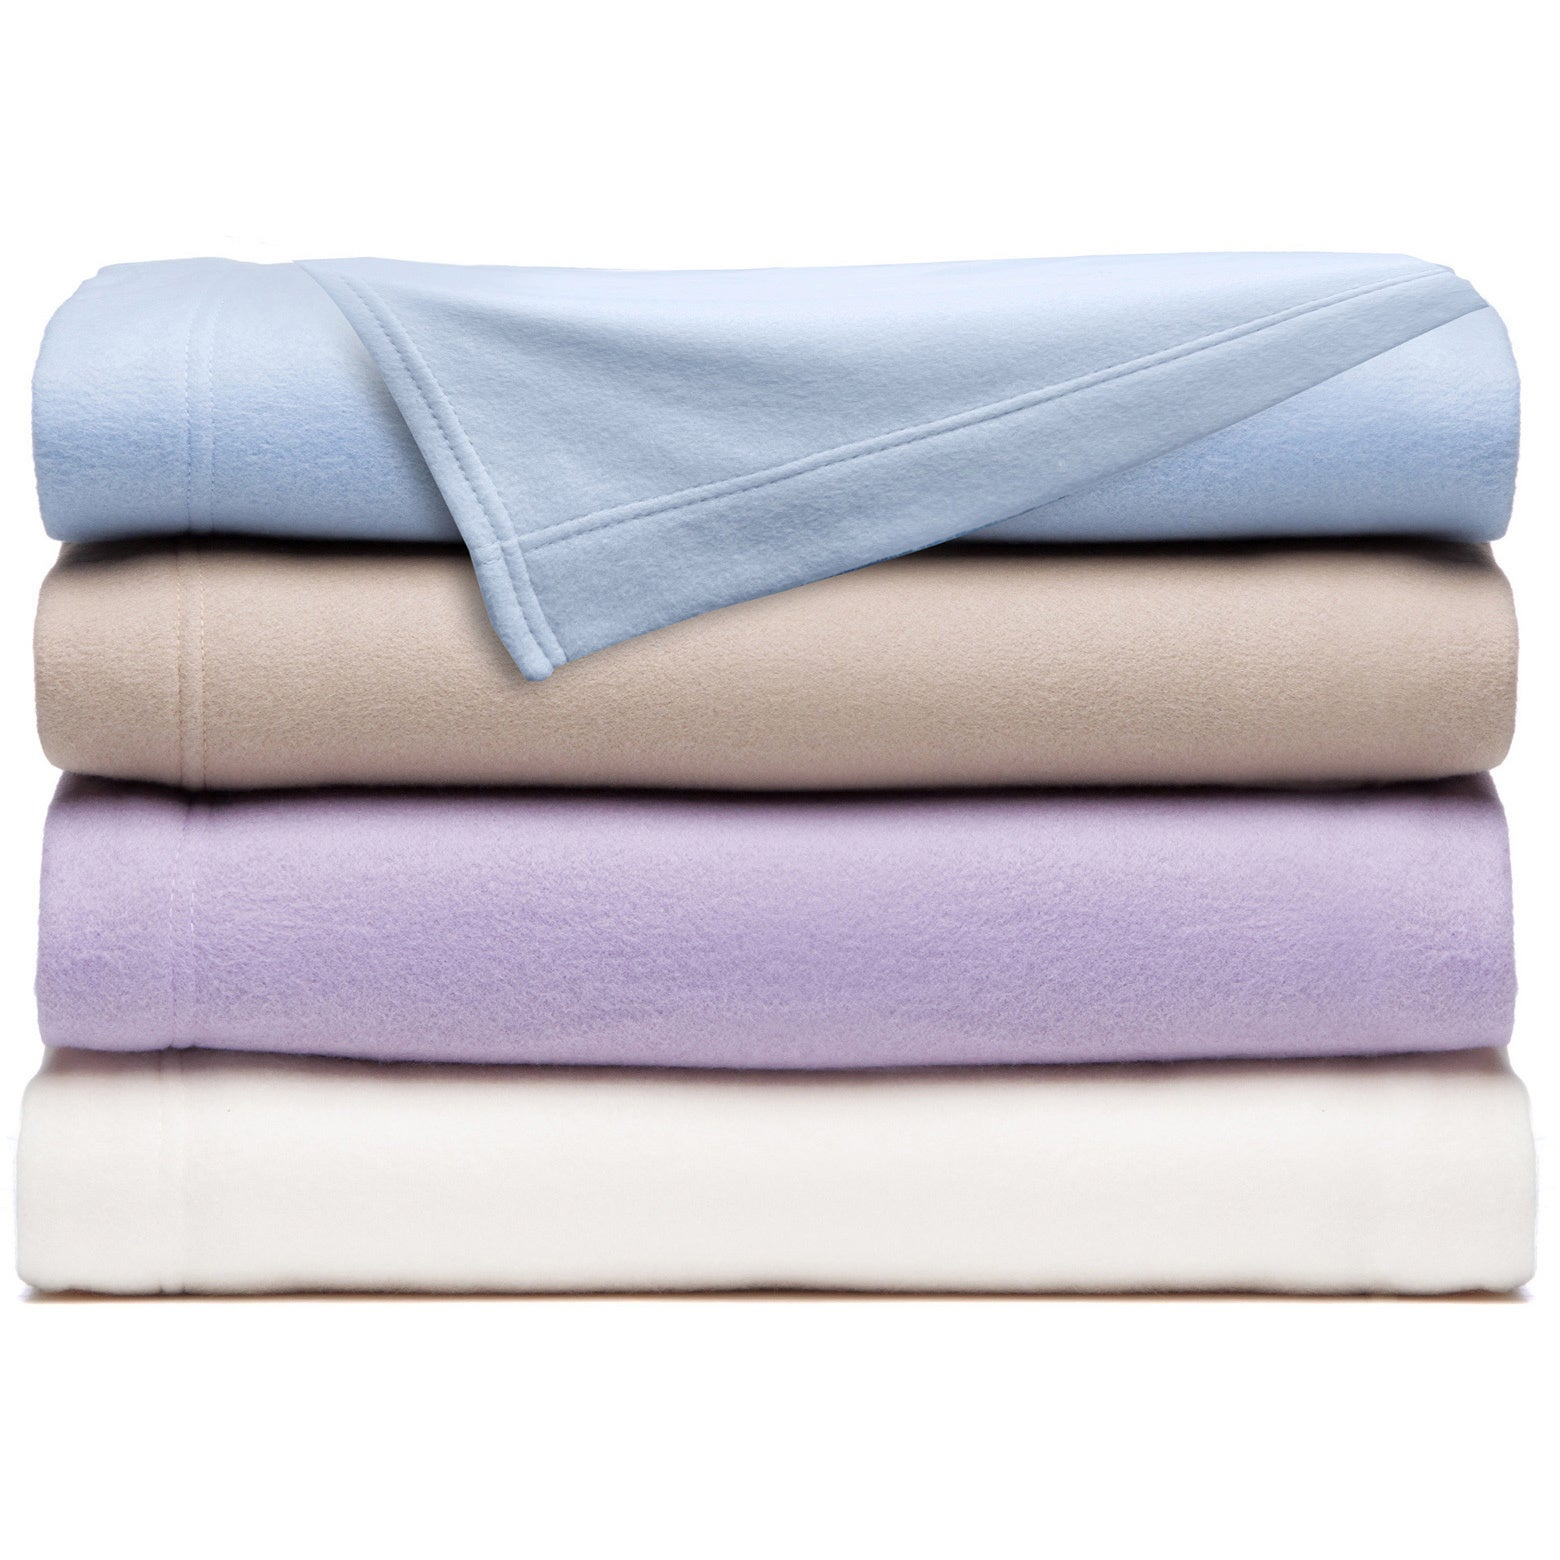 Brushed Fleece Sheet Set at Sears.com